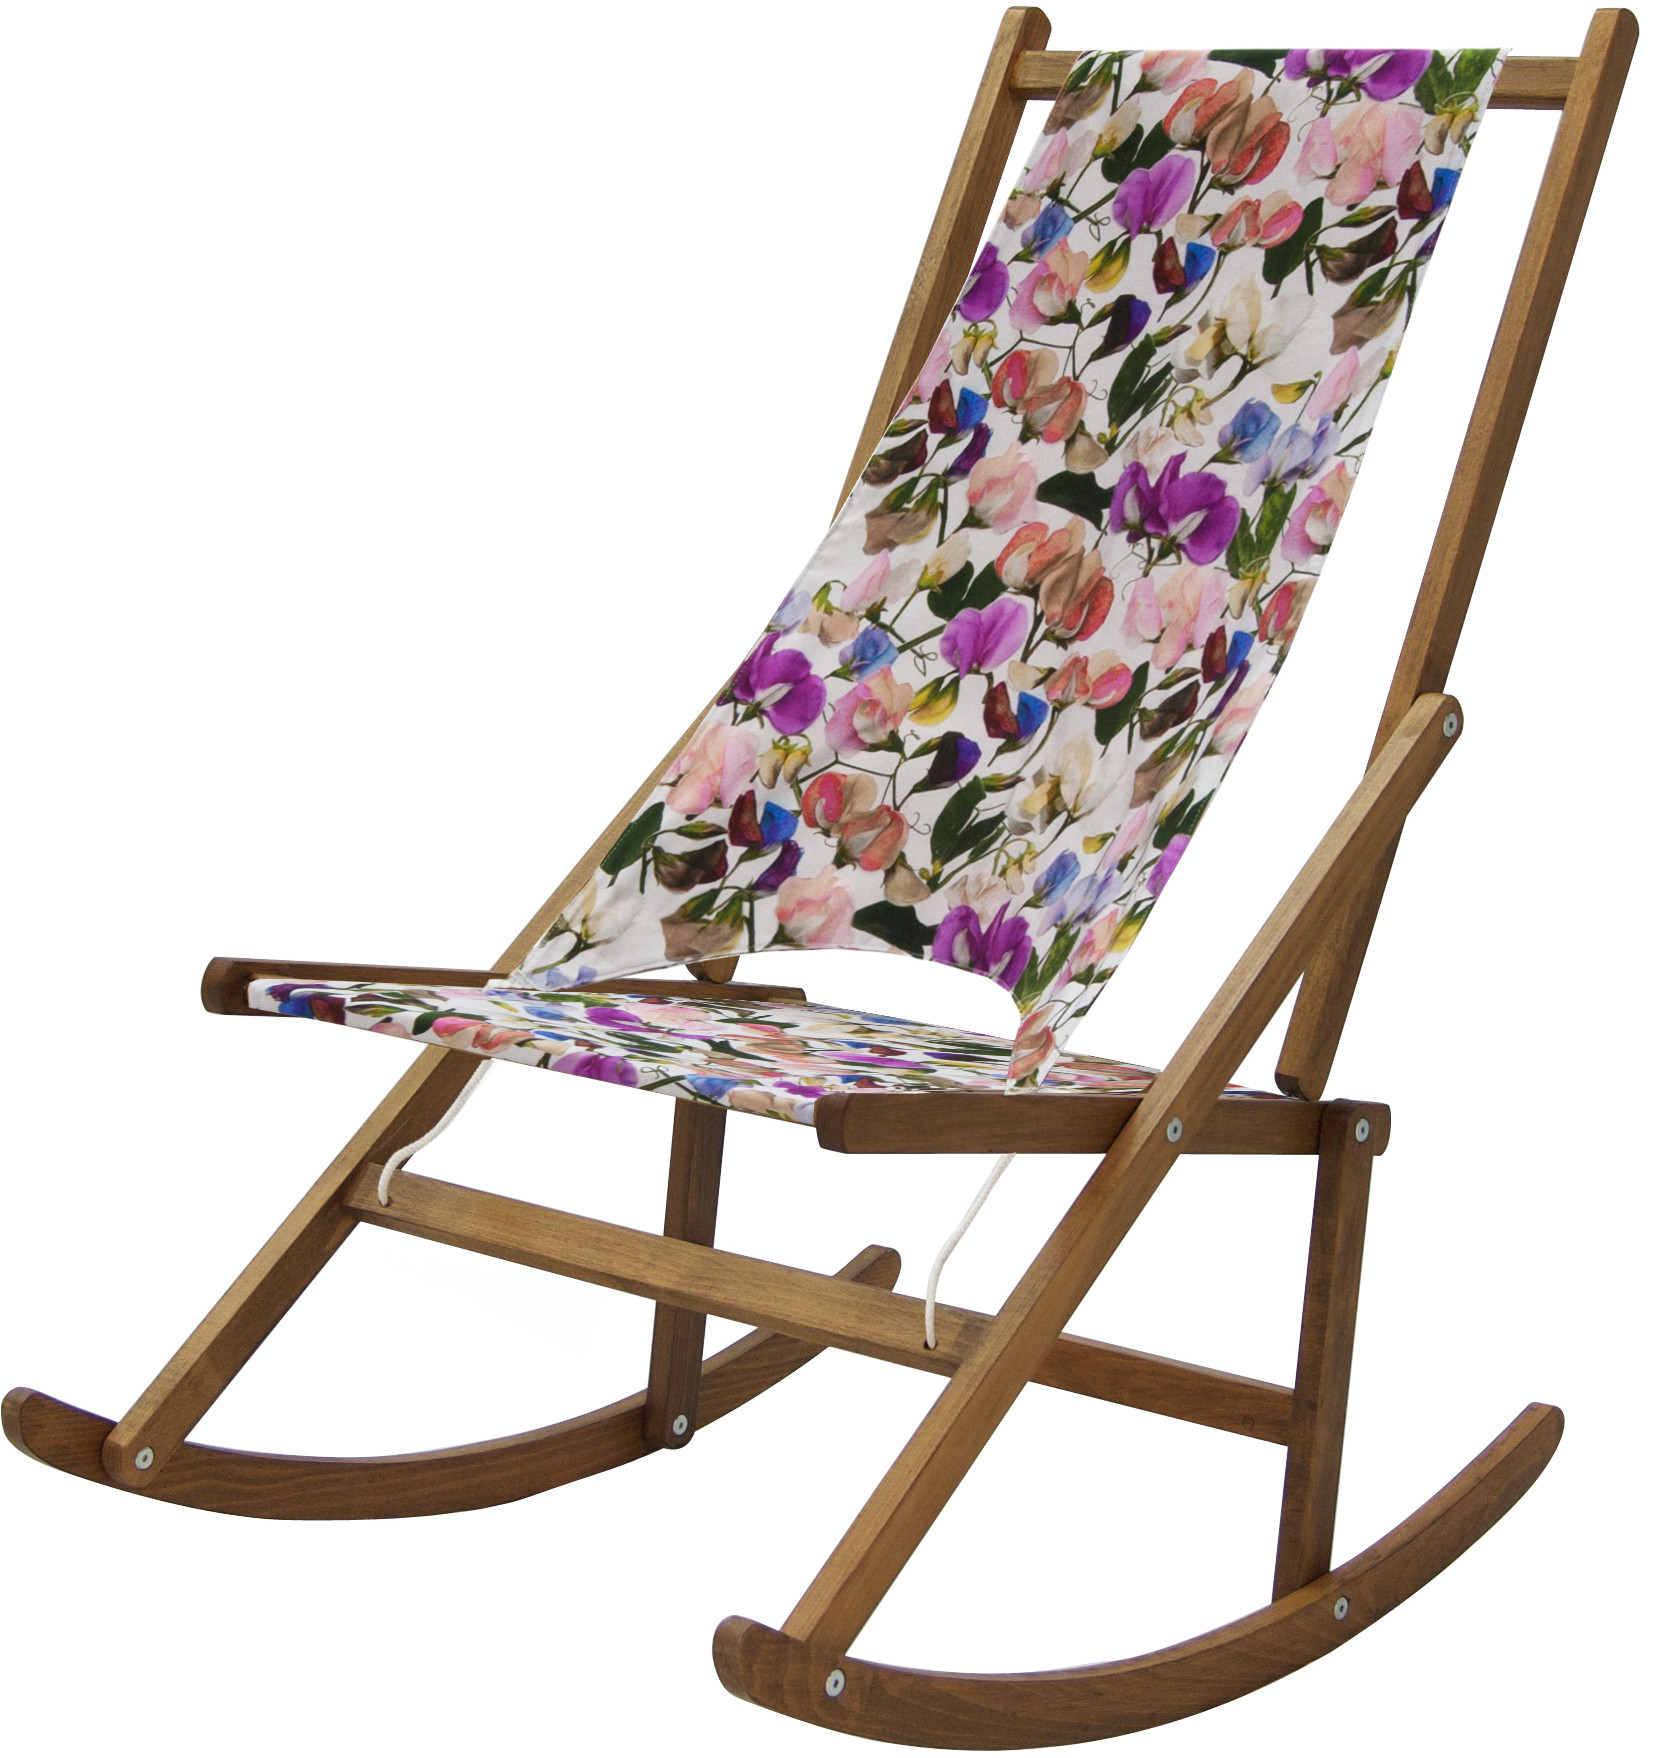 Unique Deck Chair Covers New : Inmunoanalisis.com